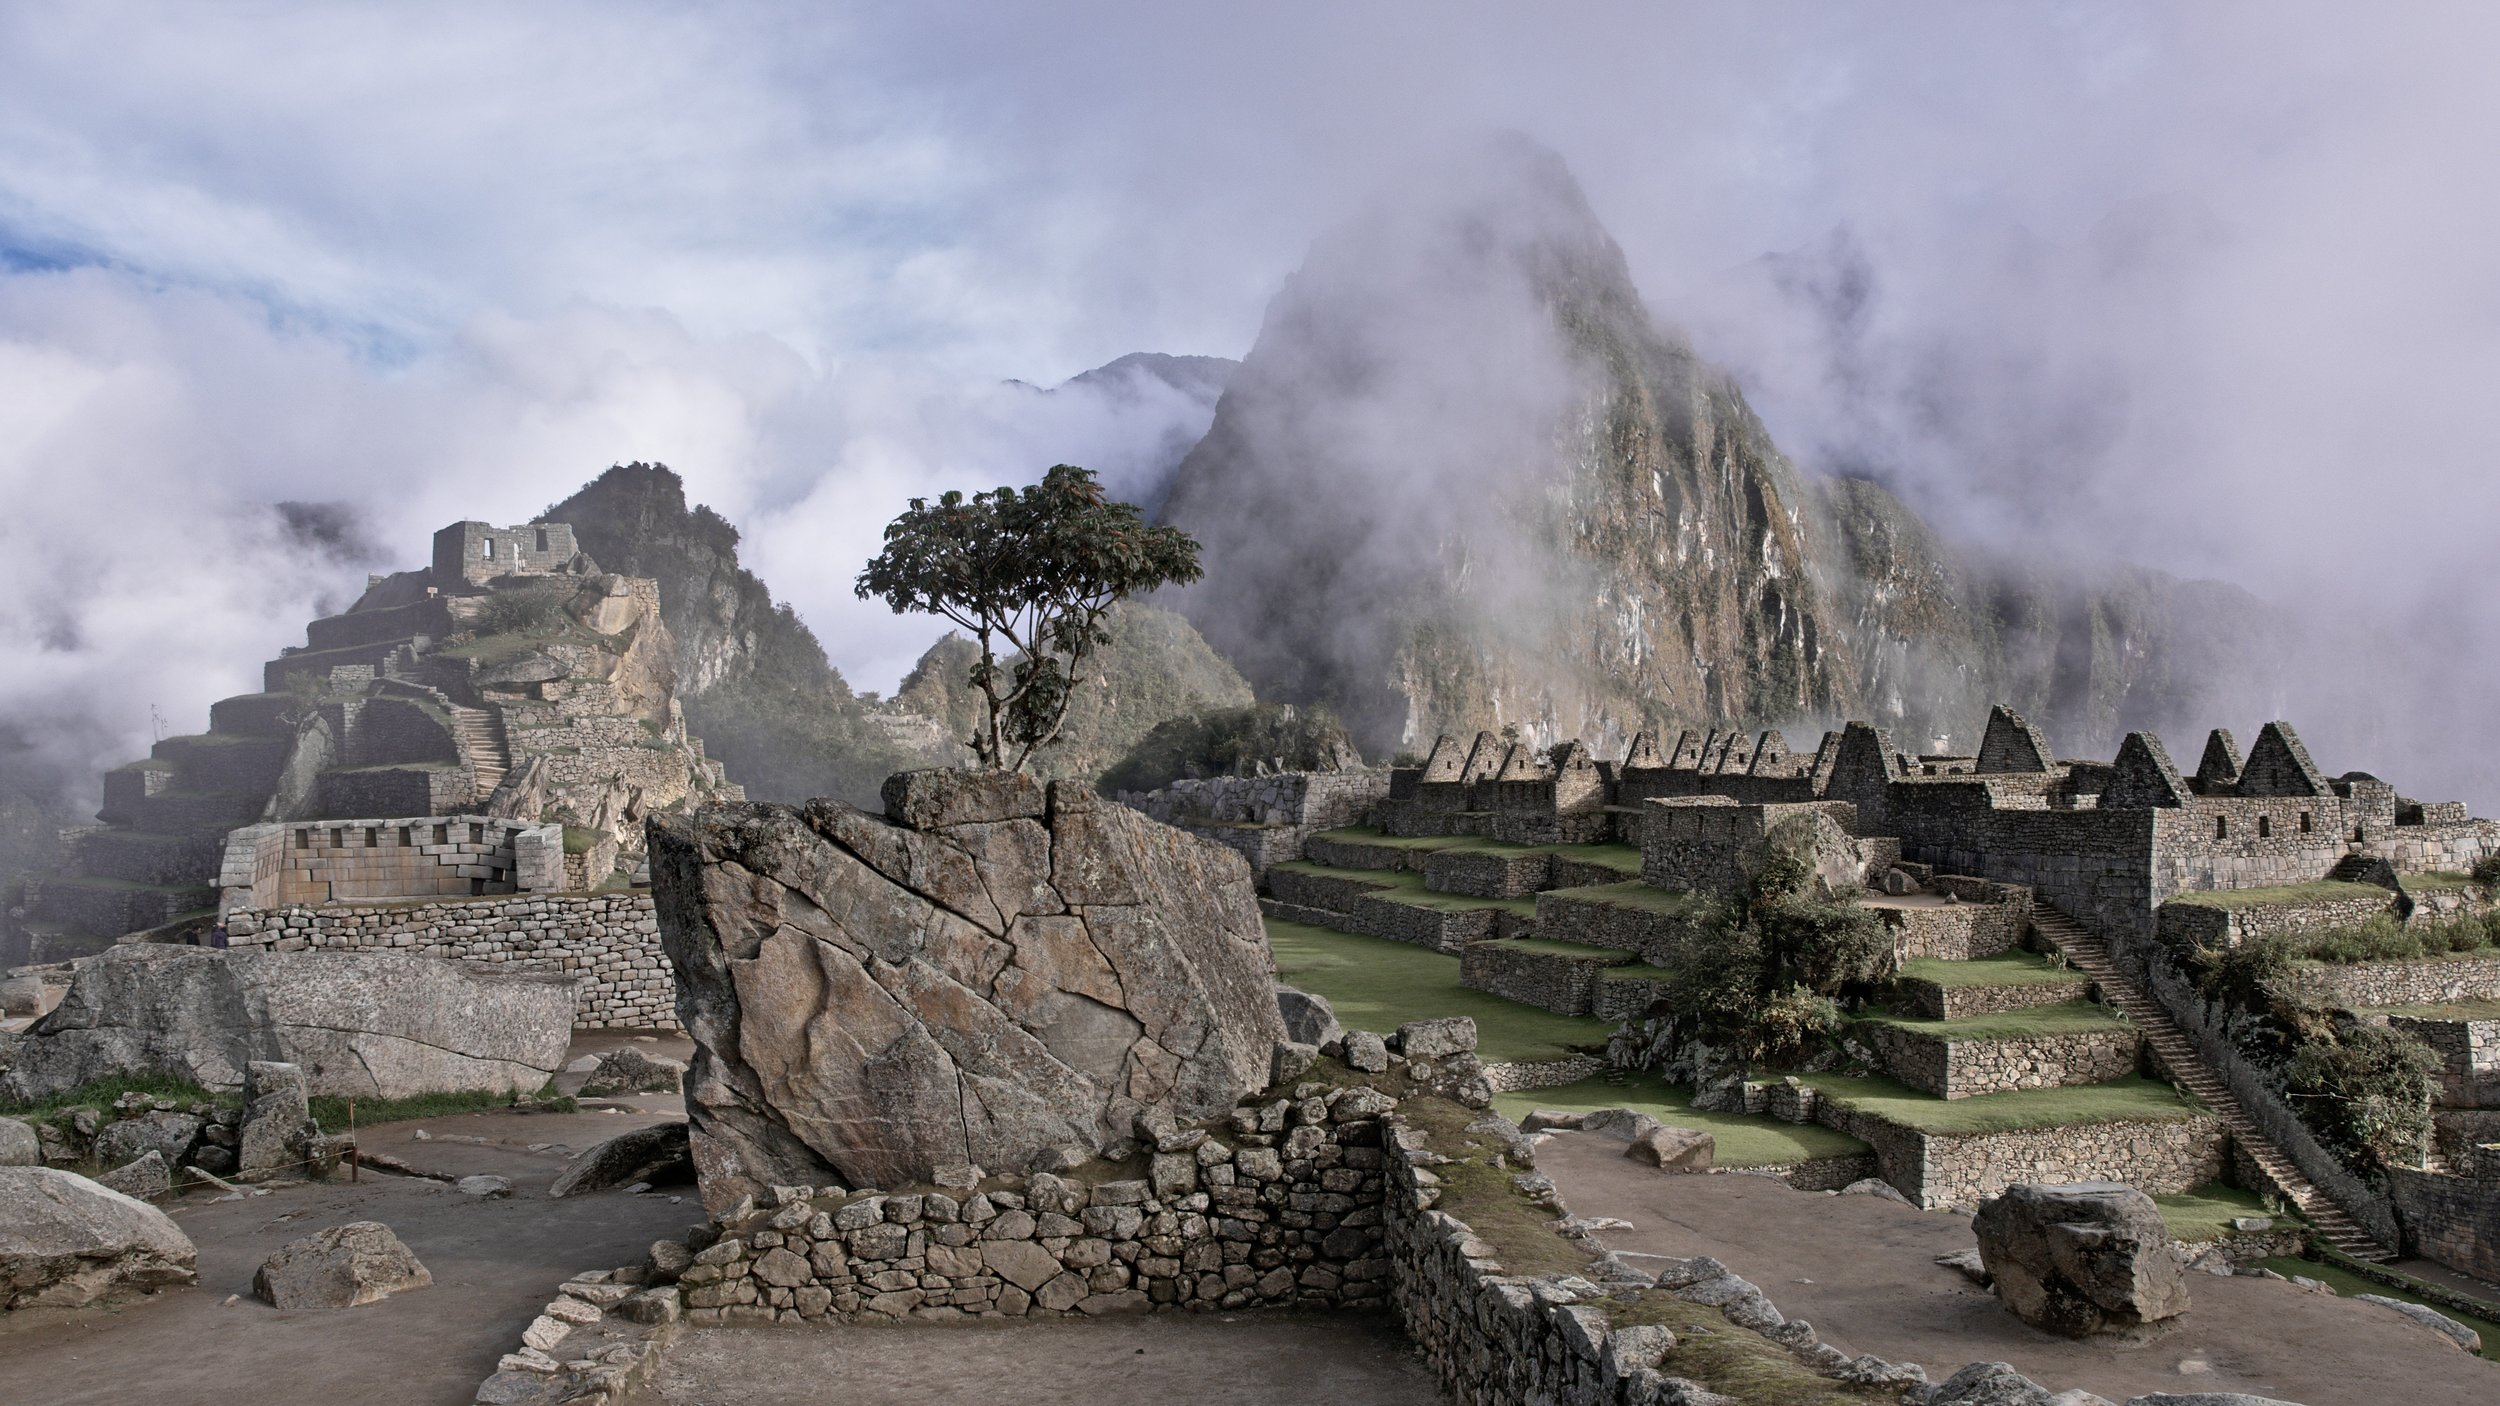 2018 Spiritual Pilgrimage to Peru - March 2018 & October 2018